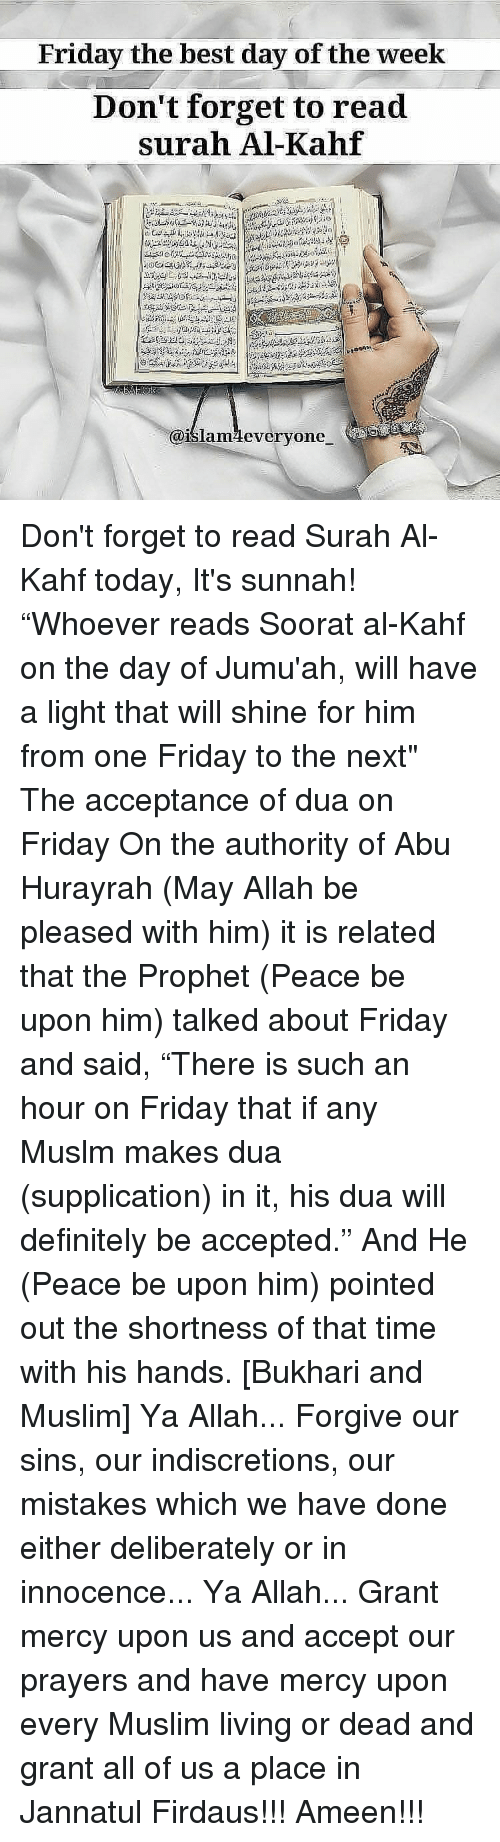 "abu: Friday the best day of the week  Don't forget to read  surah Al-Kahf  @islamMeveryone Don't forget to read Surah Al-Kahf today, It's sunnah! ""Whoever reads Soorat al-Kahf on the day of Jumu'ah, will have a light that will shine for him from one Friday to the next"" The acceptance of dua on Friday On the authority of Abu Hurayrah (May Allah be pleased with him) it is related that the Prophet (Peace be upon him) talked about Friday and said, ""There is such an hour on Friday that if any Muslm makes dua (supplication) in it, his dua will definitely be accepted."" And He (Peace be upon him) pointed out the shortness of that time with his hands. [Bukhari and Muslim] Ya Allah... Forgive our sins, our indiscretions, our mistakes which we have done either deliberately or in innocence... Ya Allah... Grant mercy upon us and accept our prayers and have mercy upon every Muslim living or dead and grant all of us a place in Jannatul Firdaus!!! Ameen!!!"